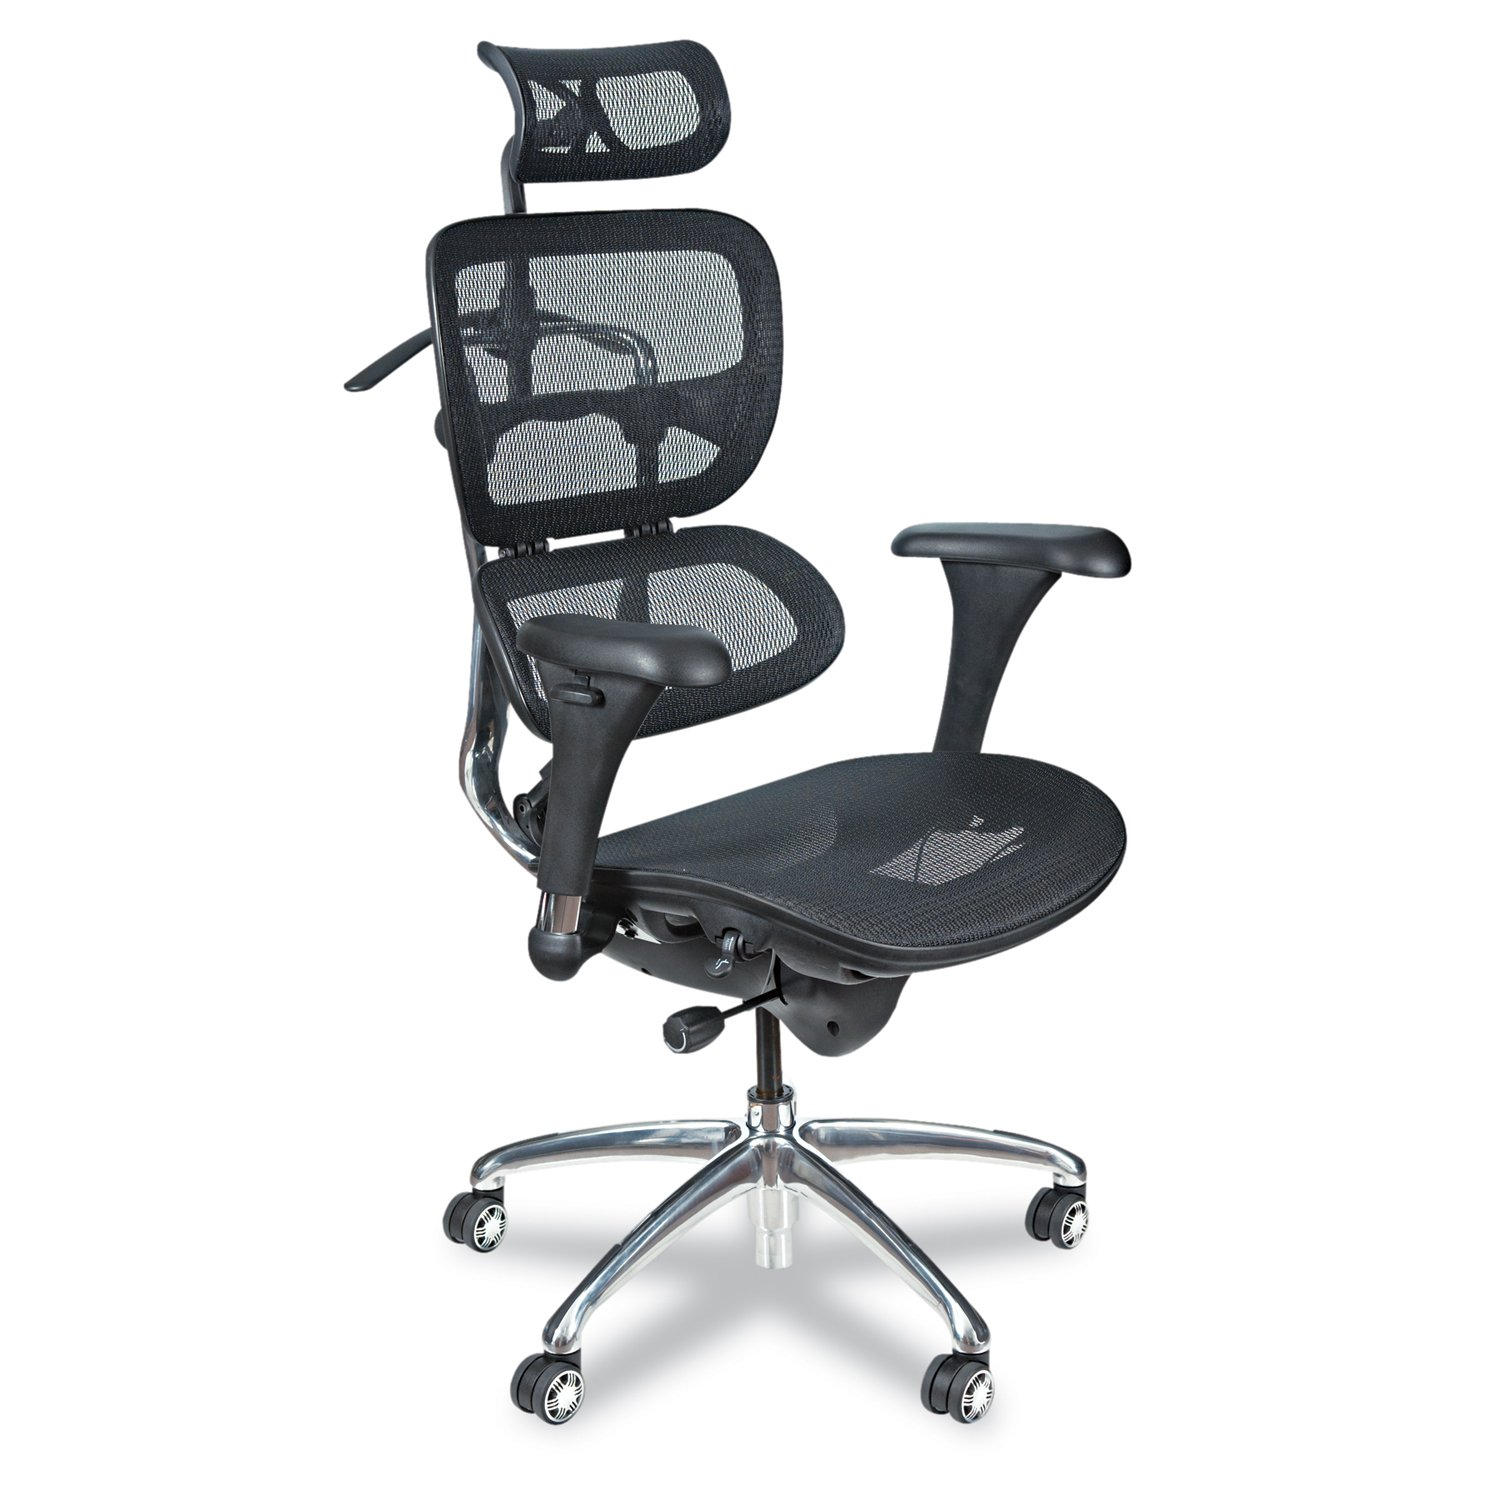 Balt Butterfly Ergonomic Executive Office Chair, Blach Mesh High Back, 48-51''H x 28''W x 24''D (34729)